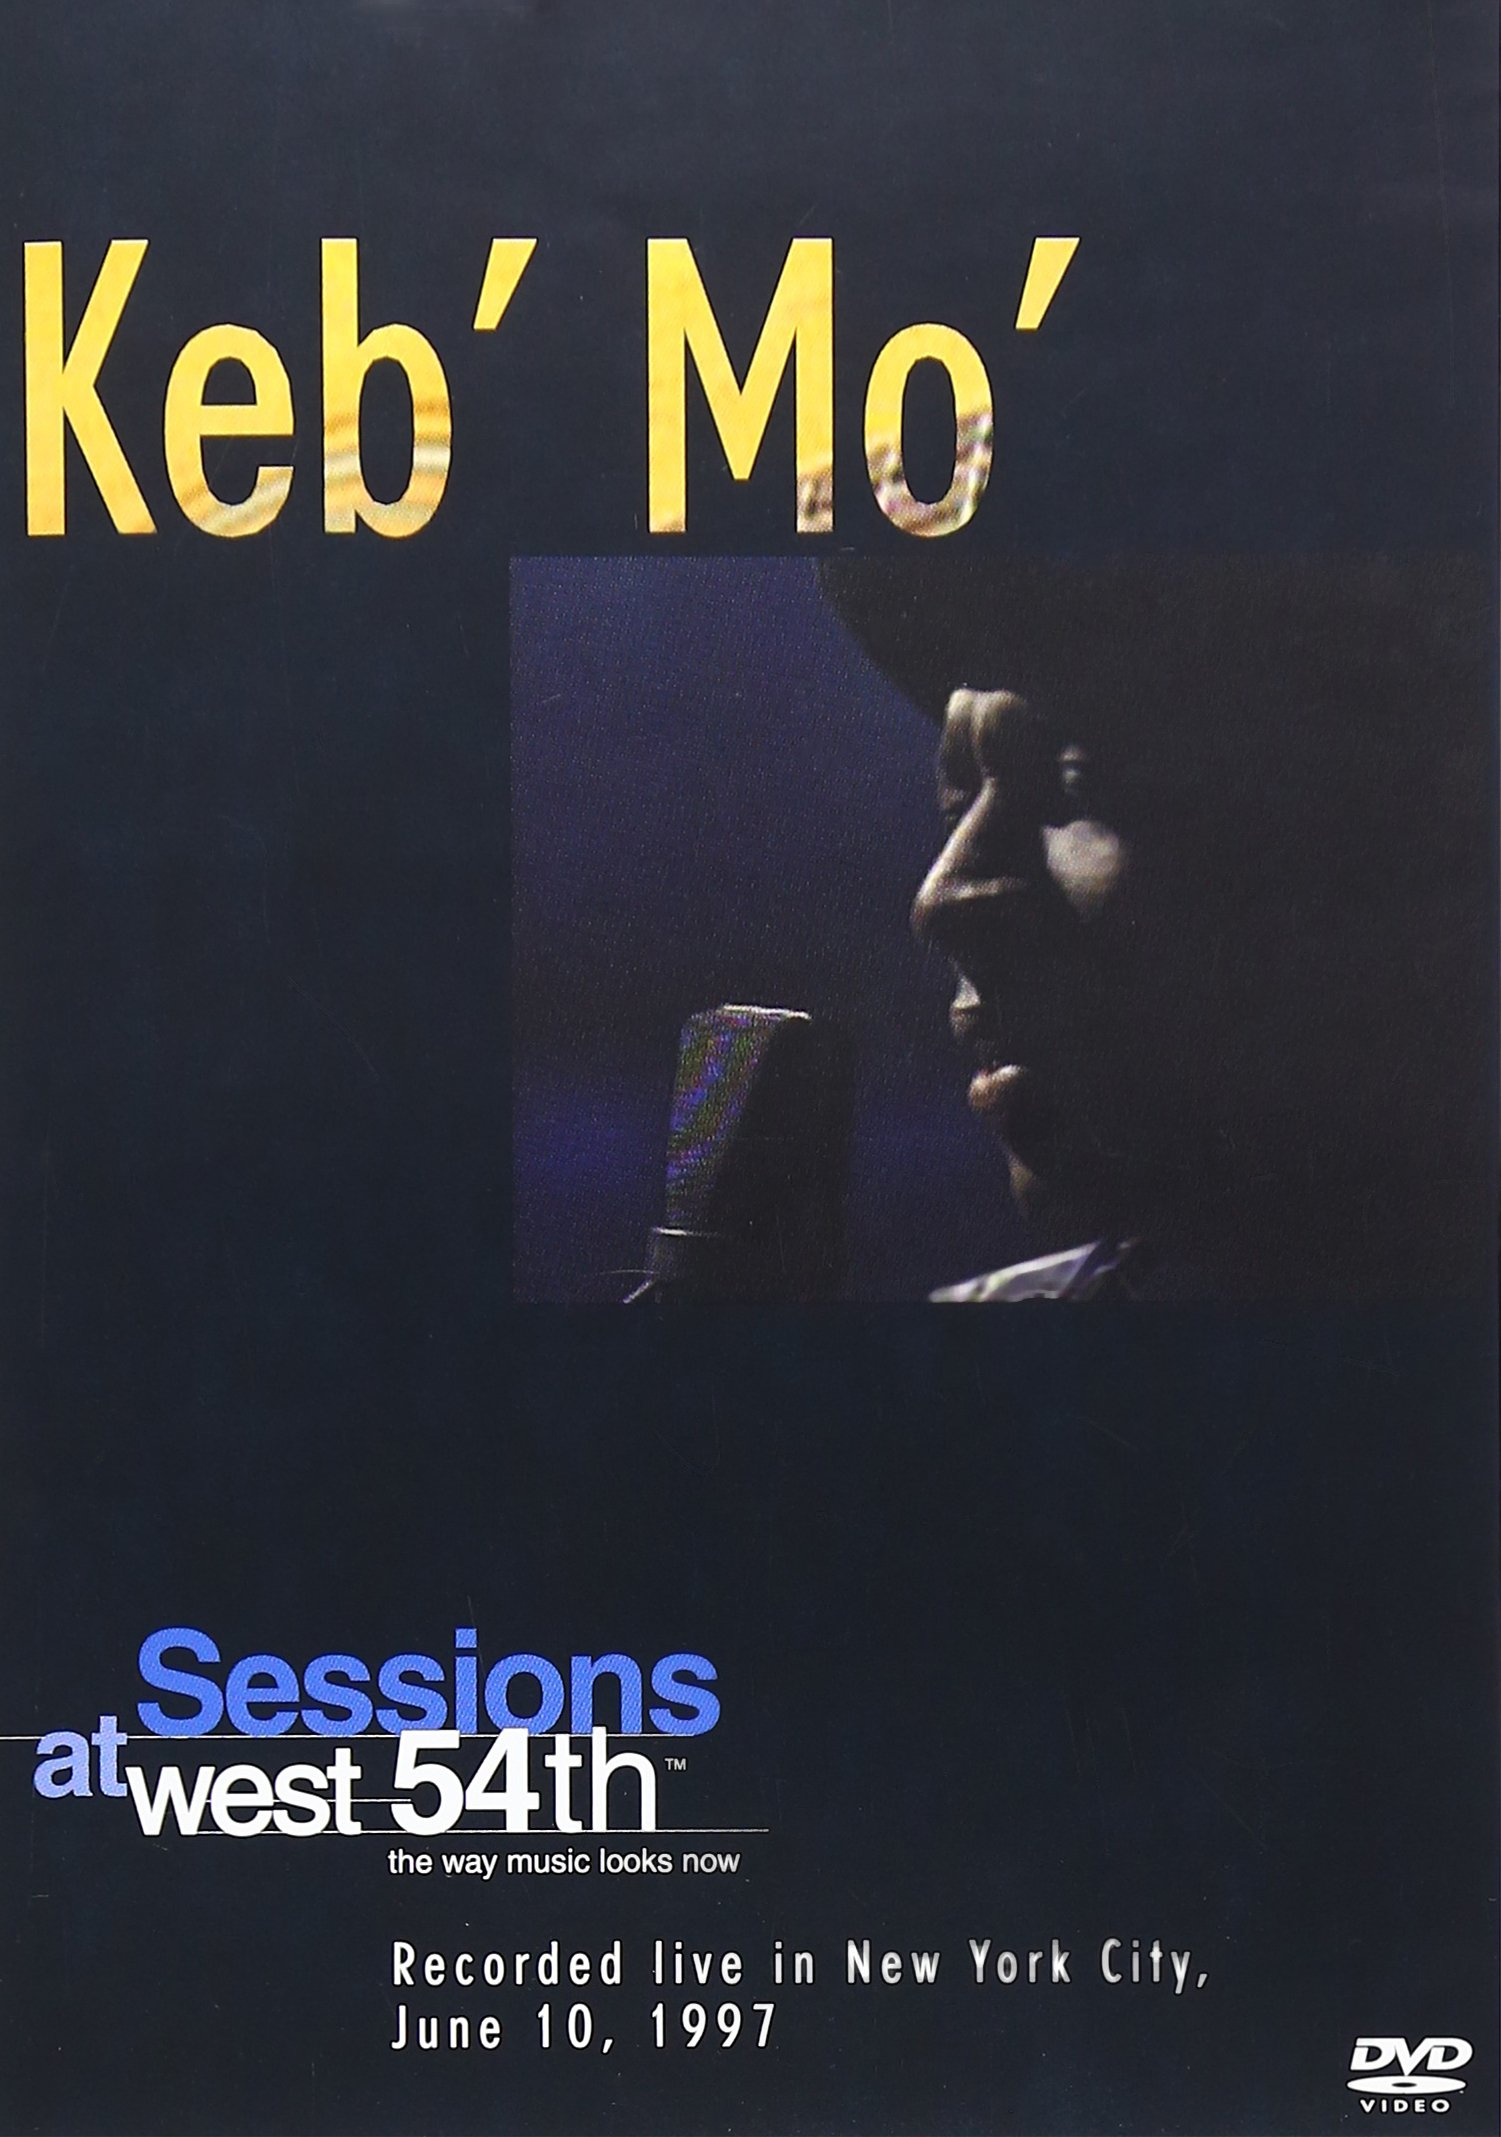 Sessions at West 54th - Recorded live in New York City, June 10, 1997